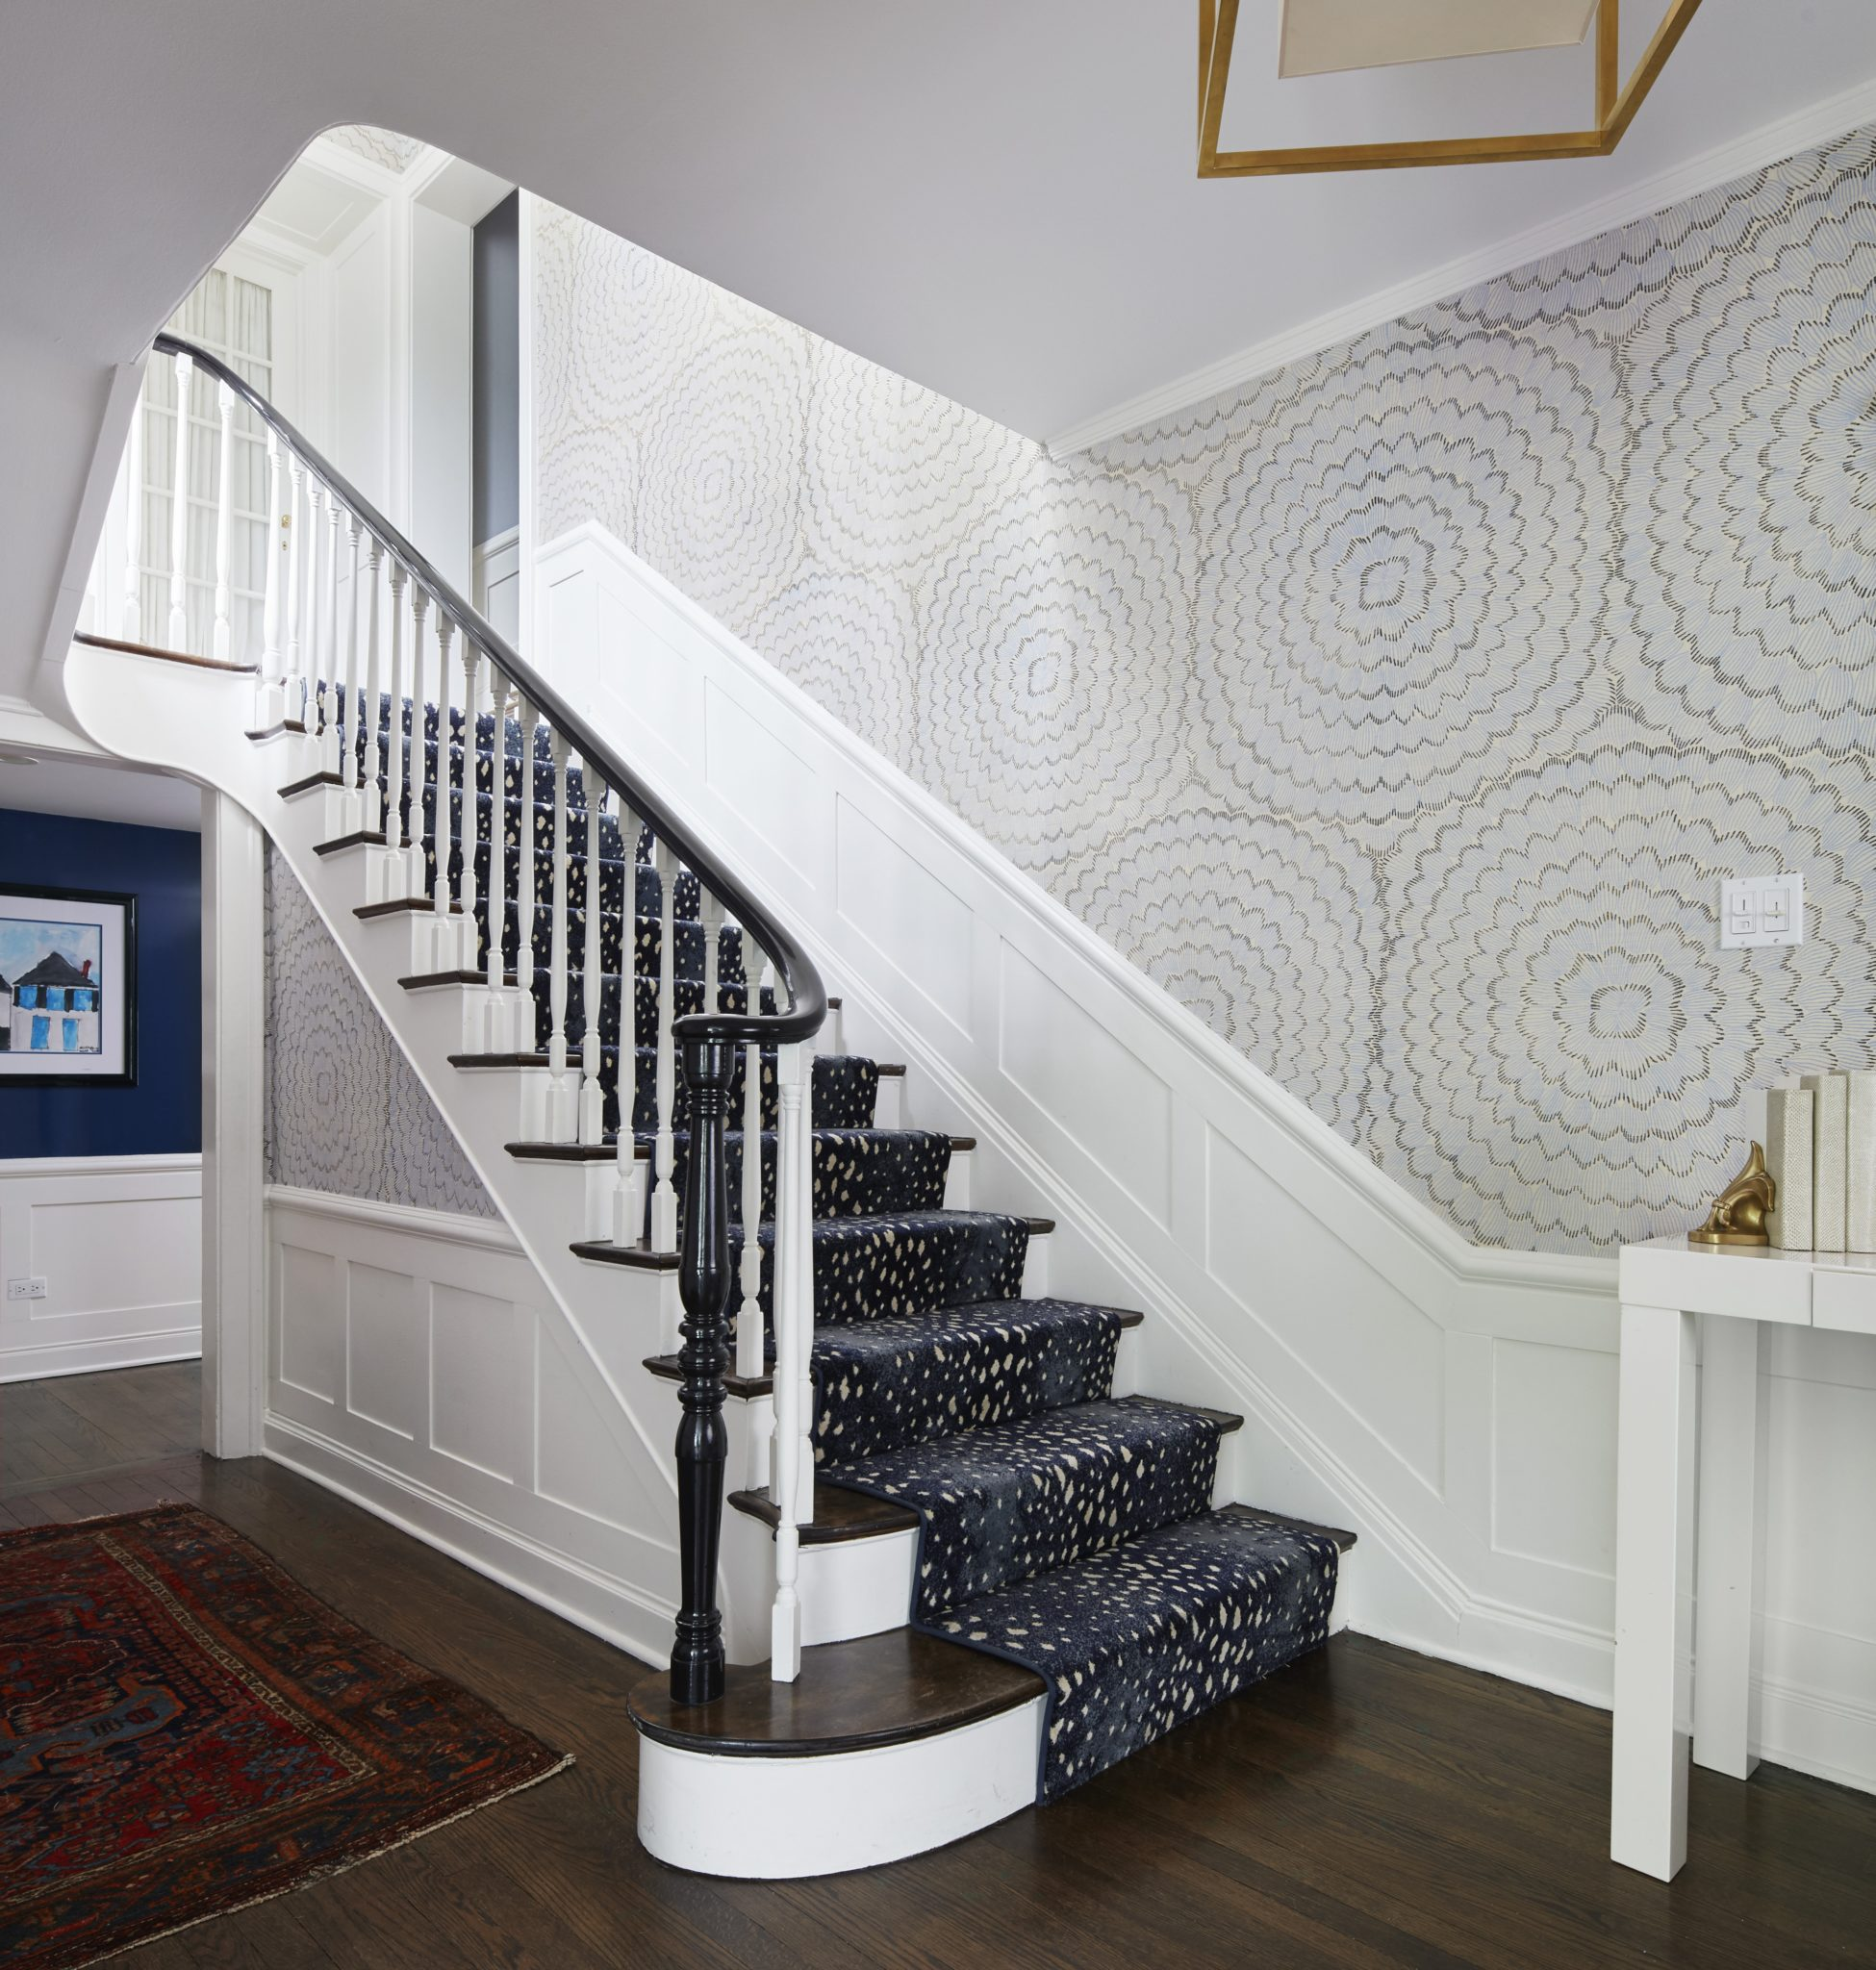 Staircase by Amy Kartheiser Design